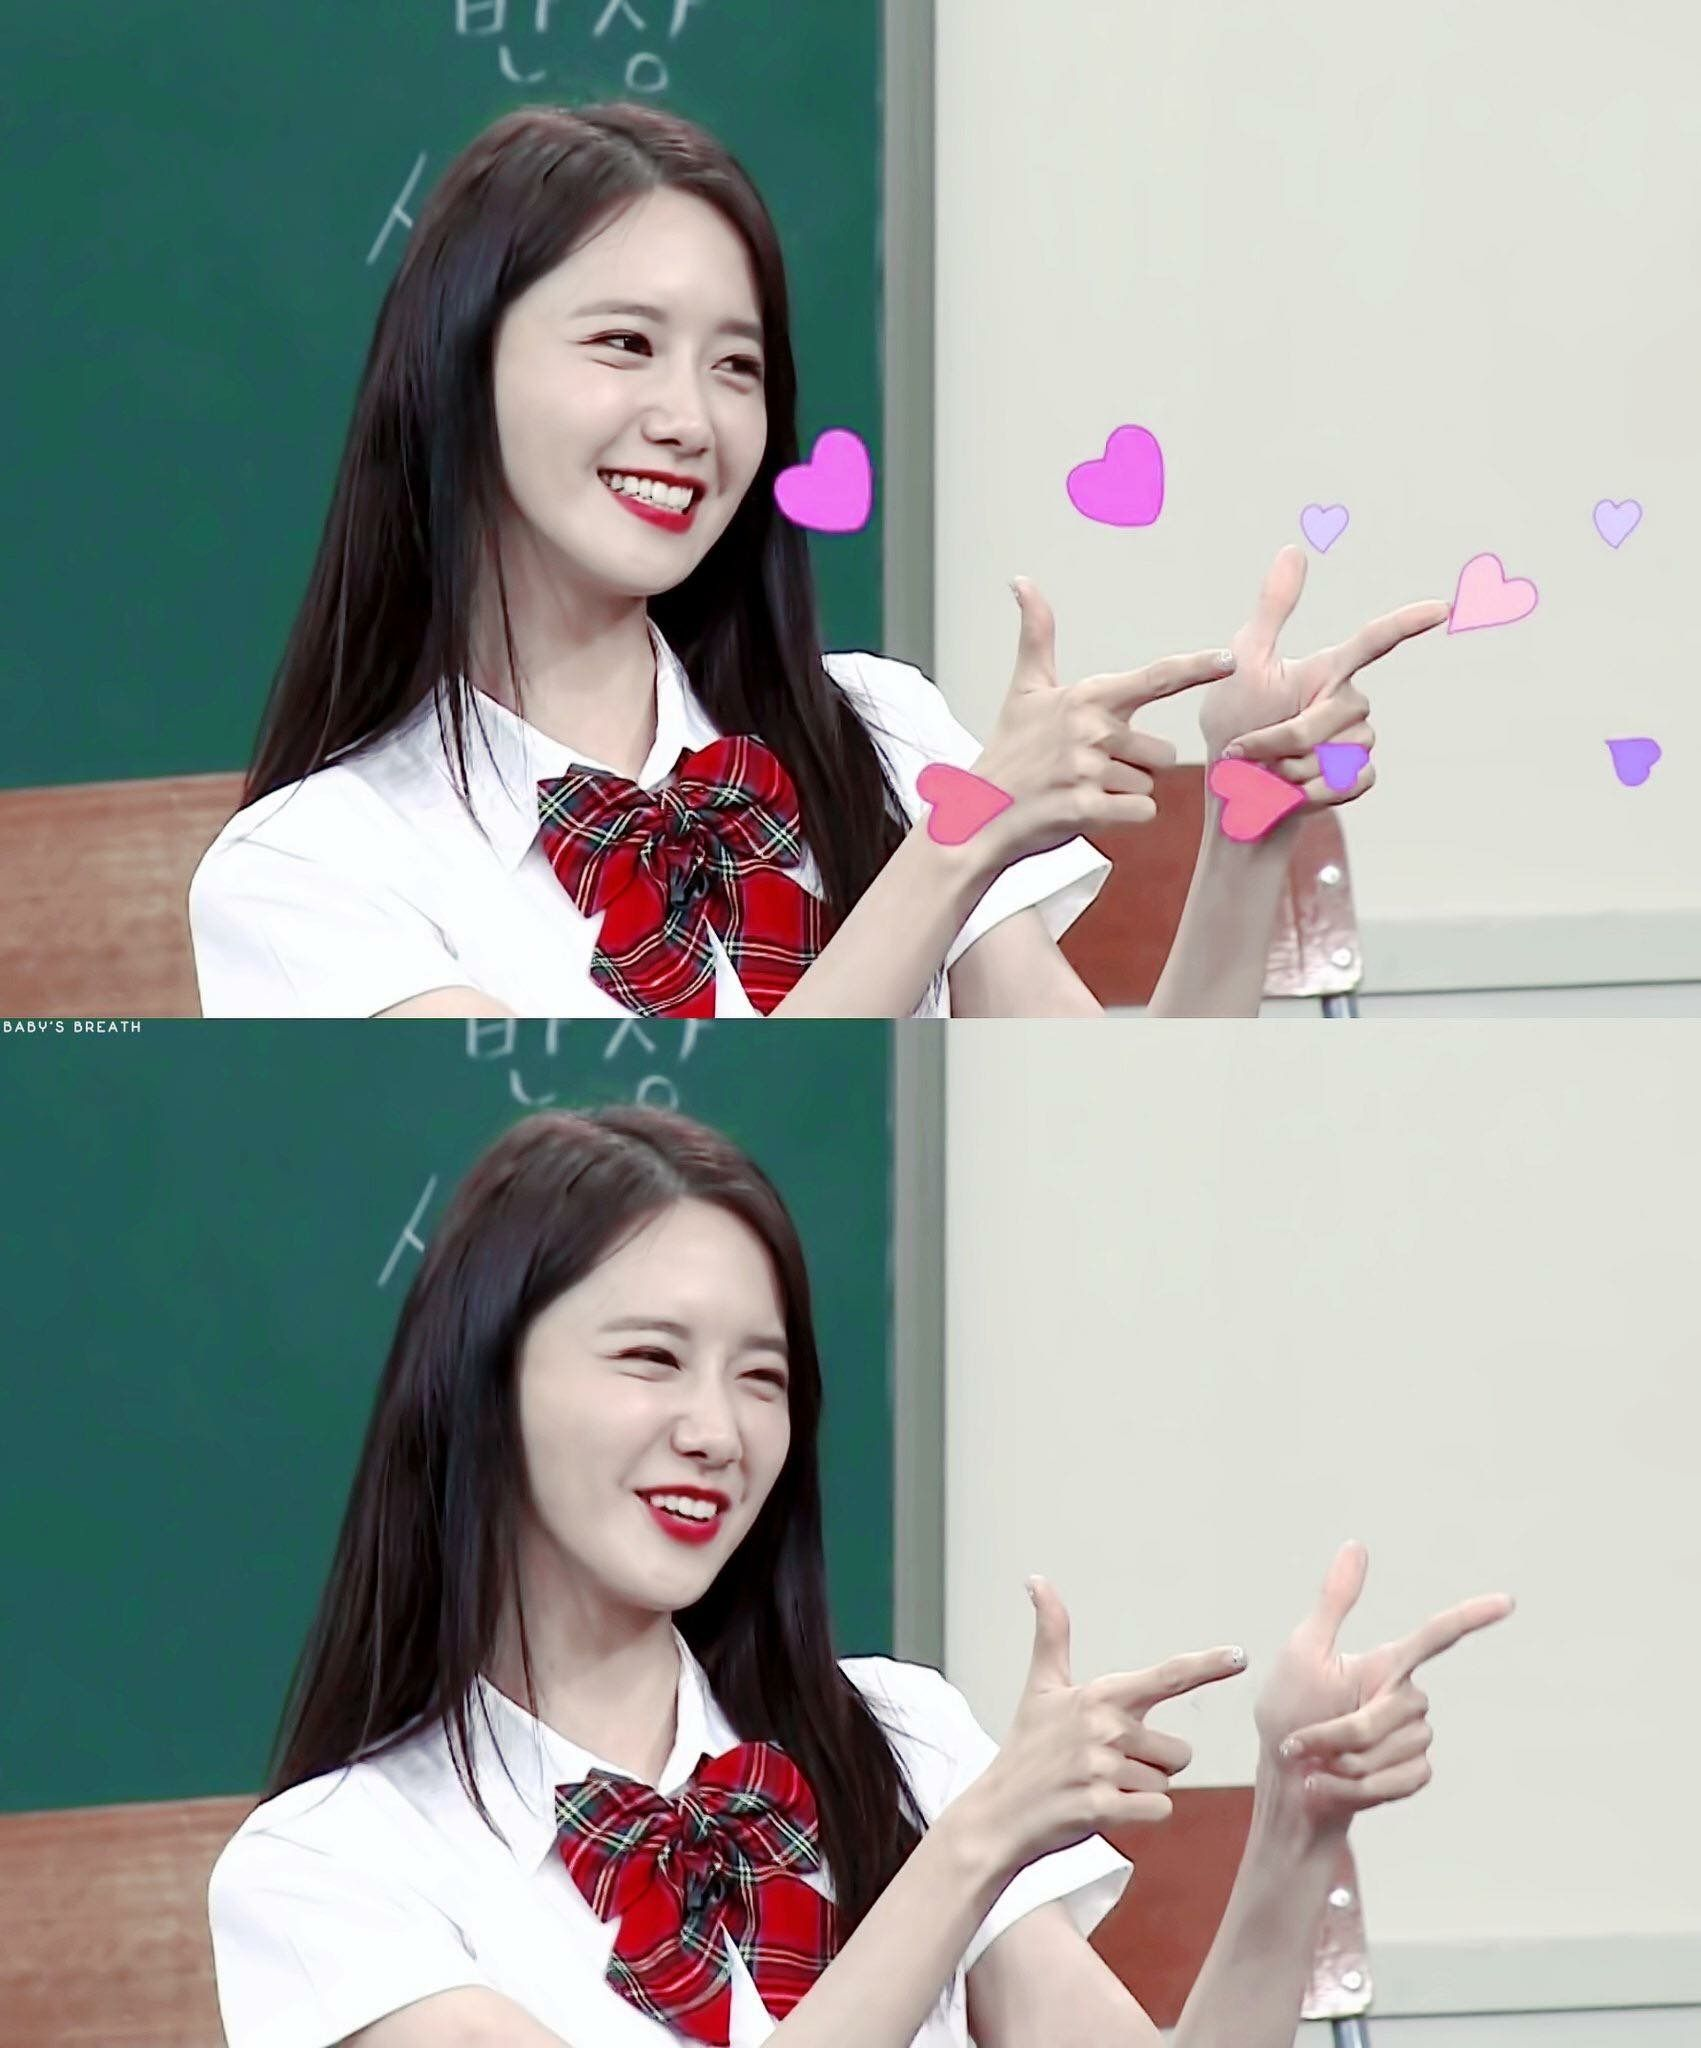 #Yoona #2017 #Tvshow #knowingbrother | SNSD - Girls ...